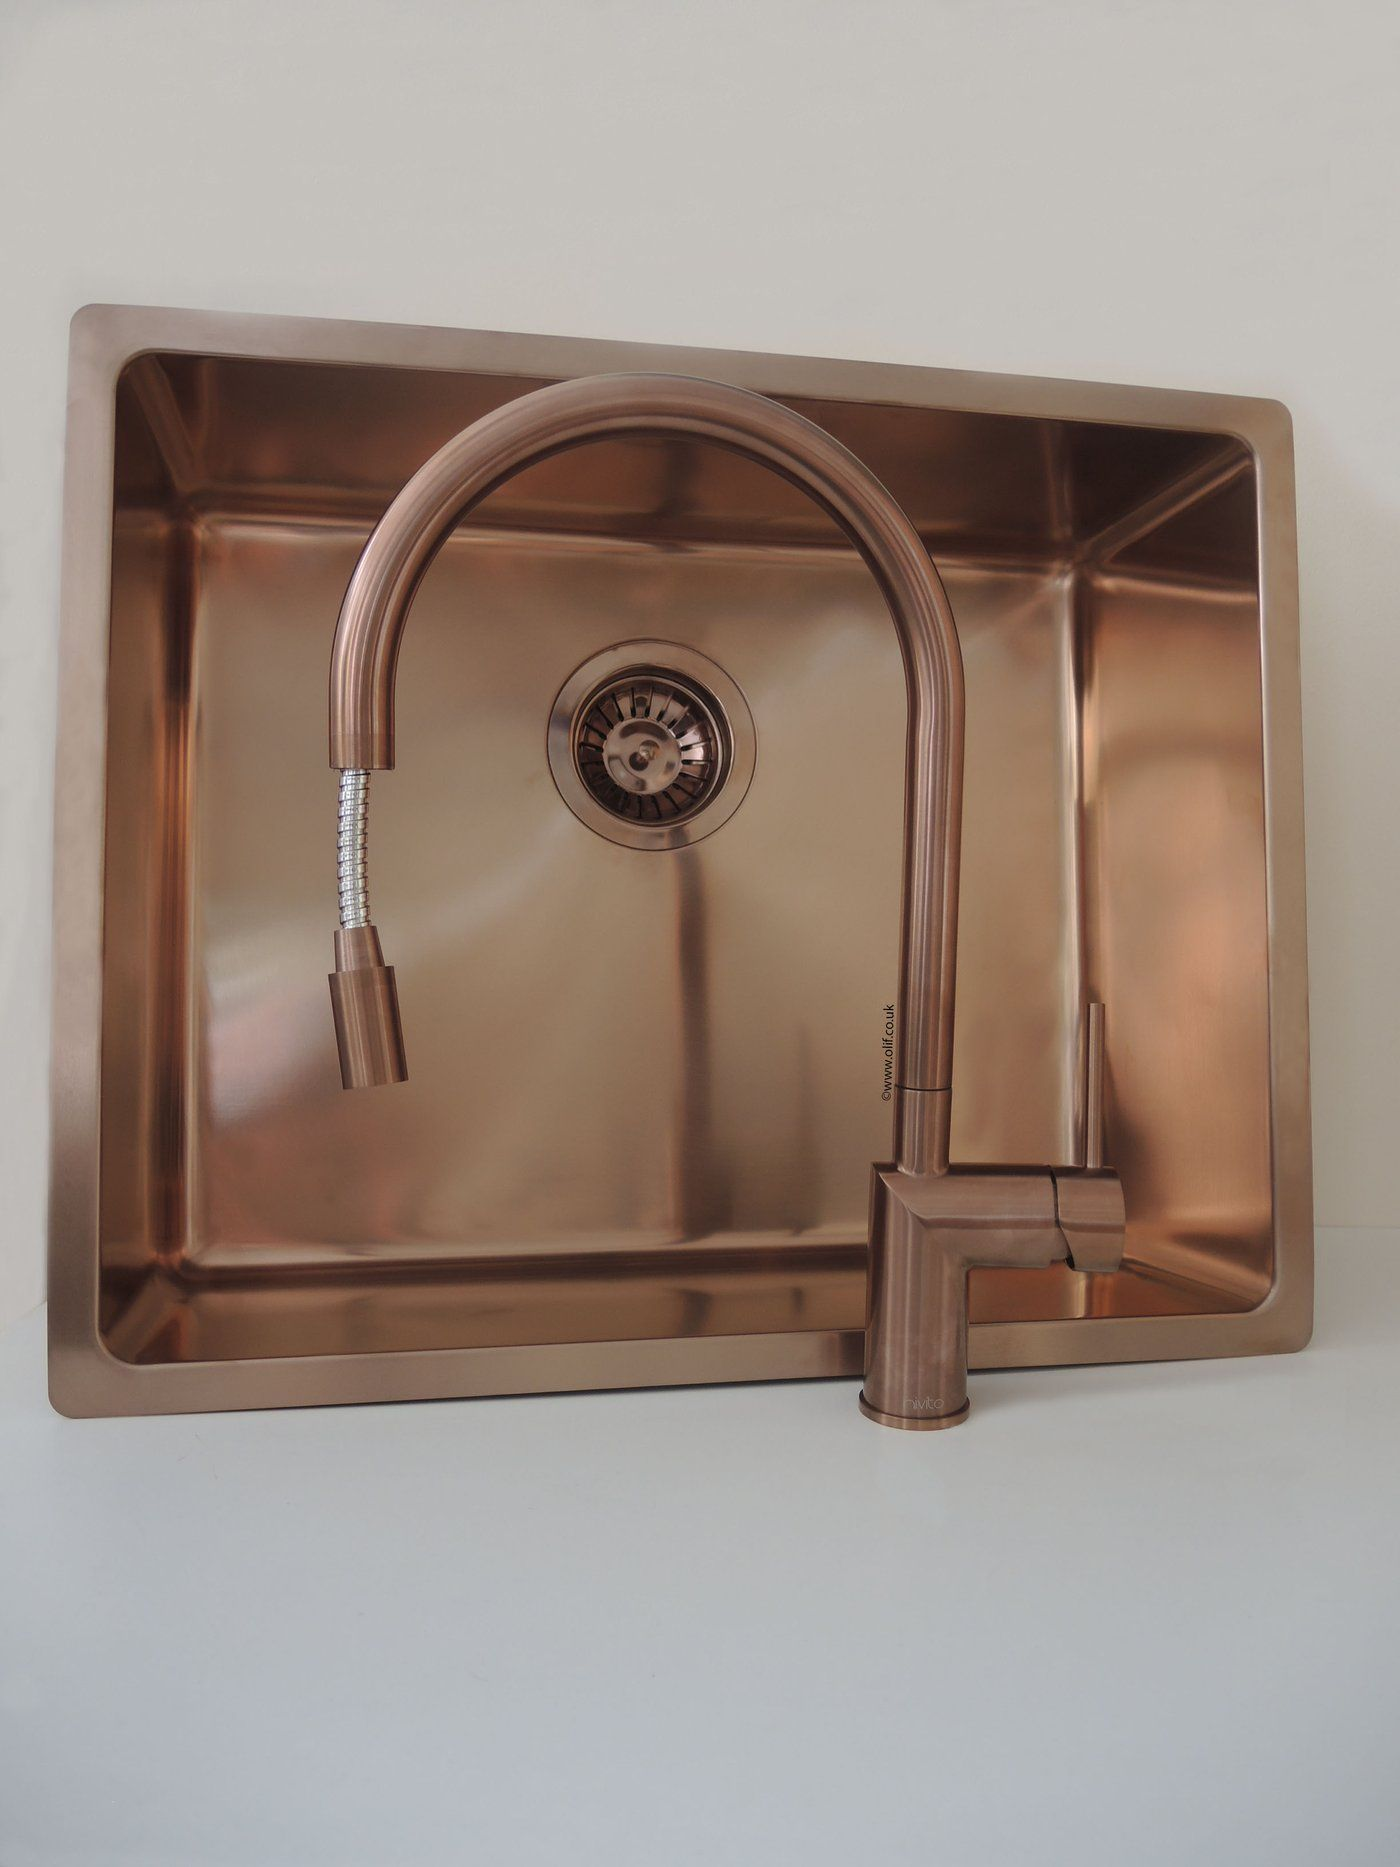 Brushed Copper Pull Out Mixer Tap Stainless Steel Uk Nivito Rh